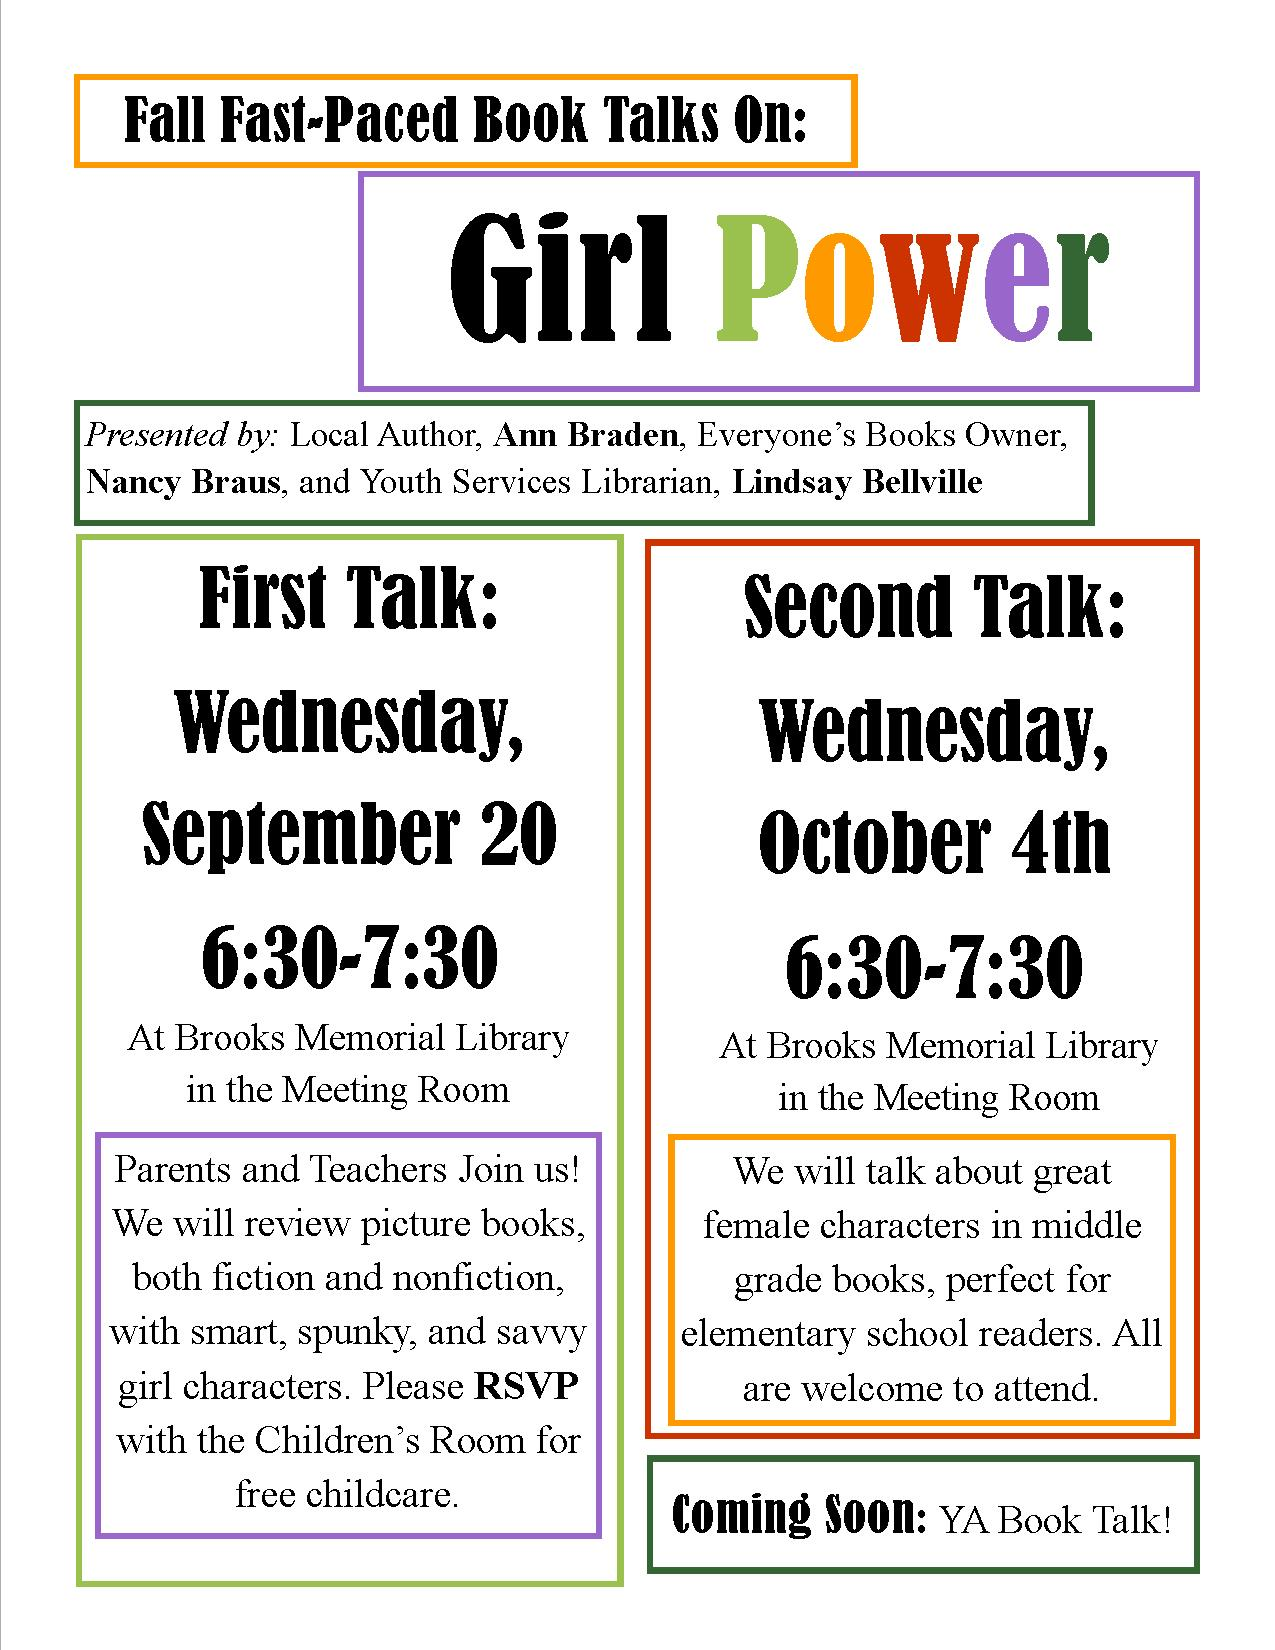 Girl Power Event information on a white background